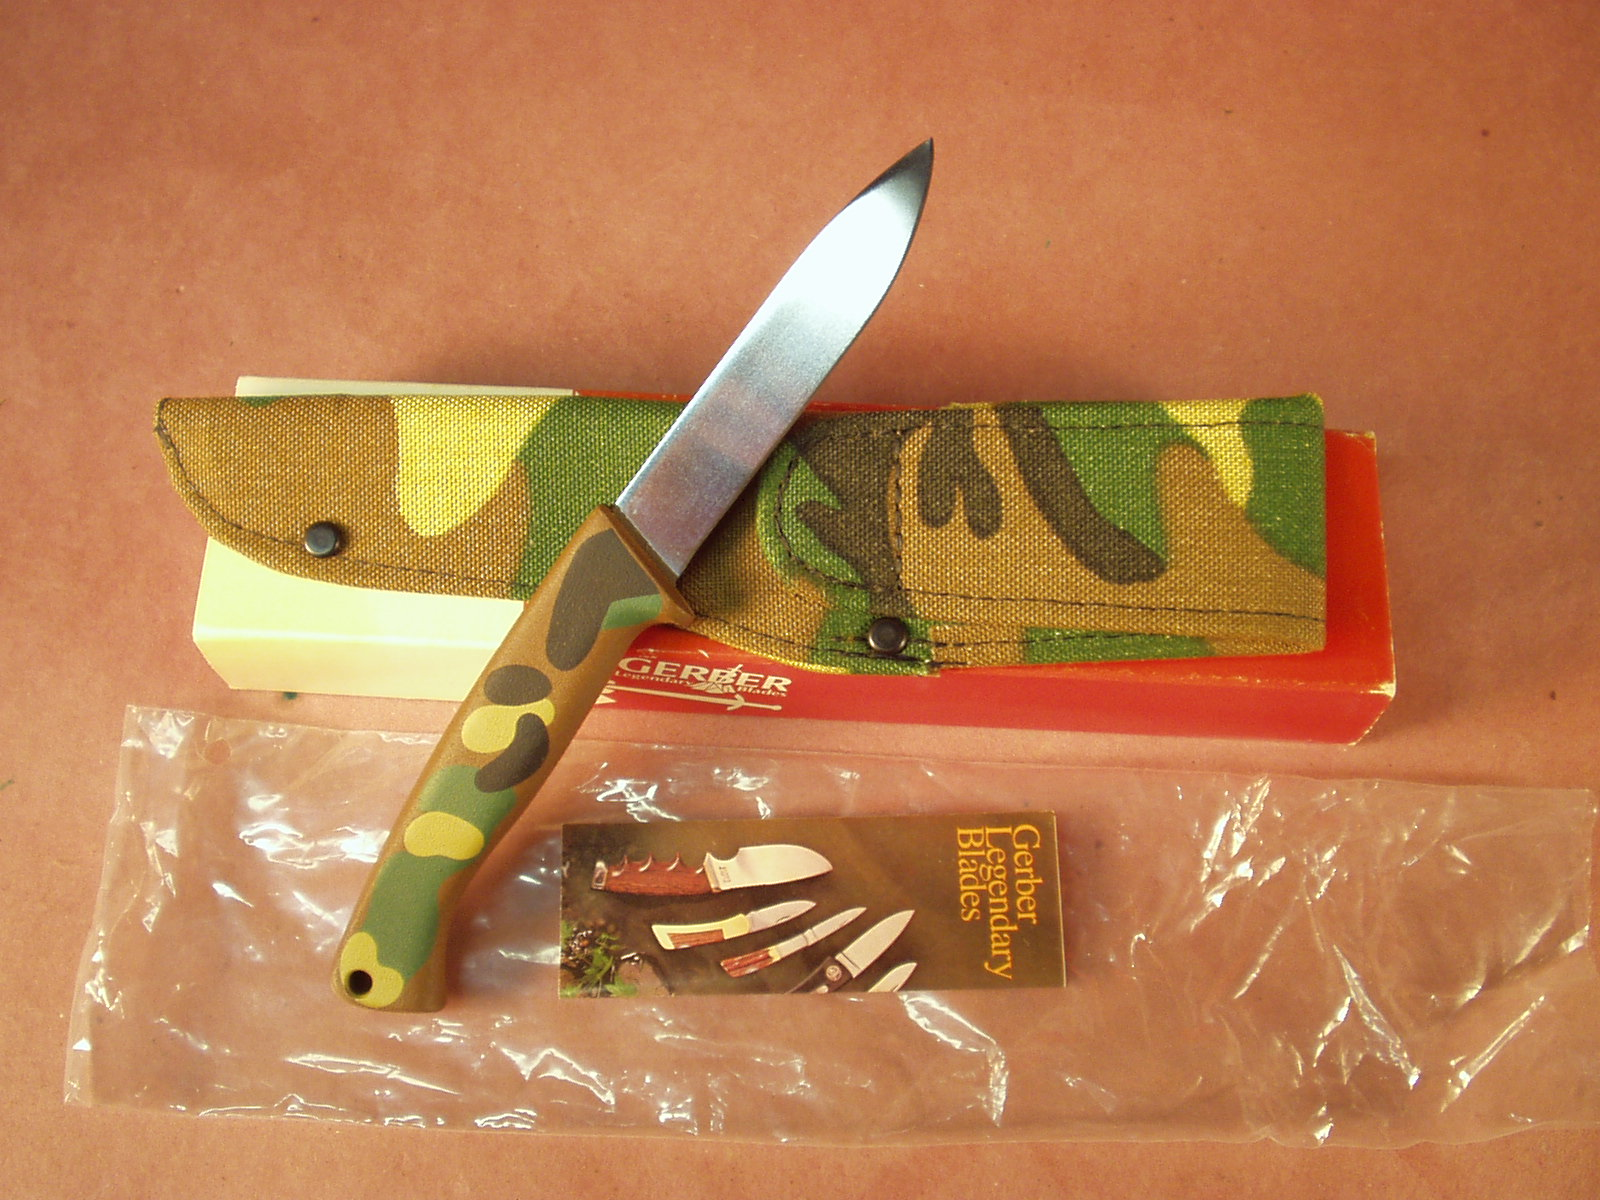 Gerber - A400 ( Camouflage ) Knife #5205